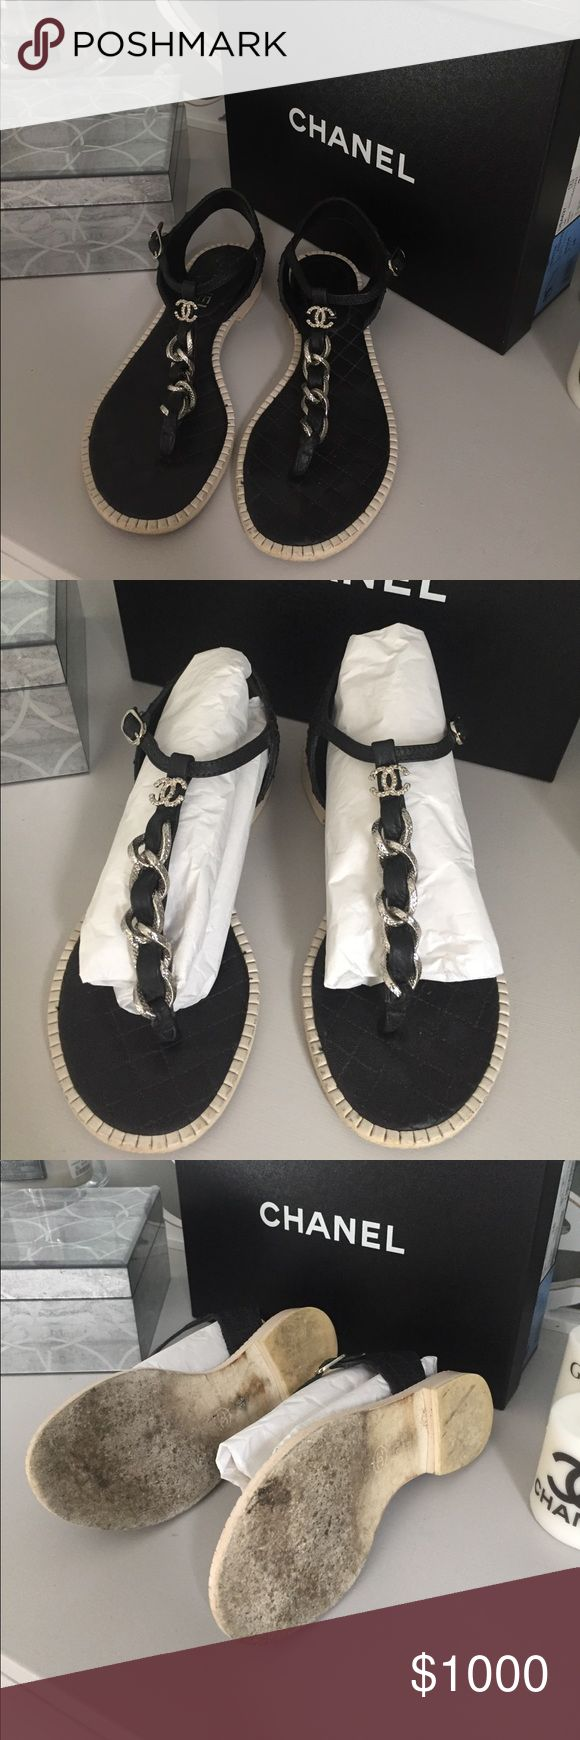 Authentic Chanel black thong chain CC sandals 36 In excellent used condition. Never to be sold in stores again. 2015P calfskin leather. Silver chain hardware and CC. Buckle closure. Bottoms are originally all white so of course they will look this way even after worn 1x. Size 36. KNOW YOUR CHANEL SIZE! comes with everything. Box and dust bags. All original. Not budging on the price. Please don't ask to trade either. I DO NOT TRADE! CHANEL Shoes